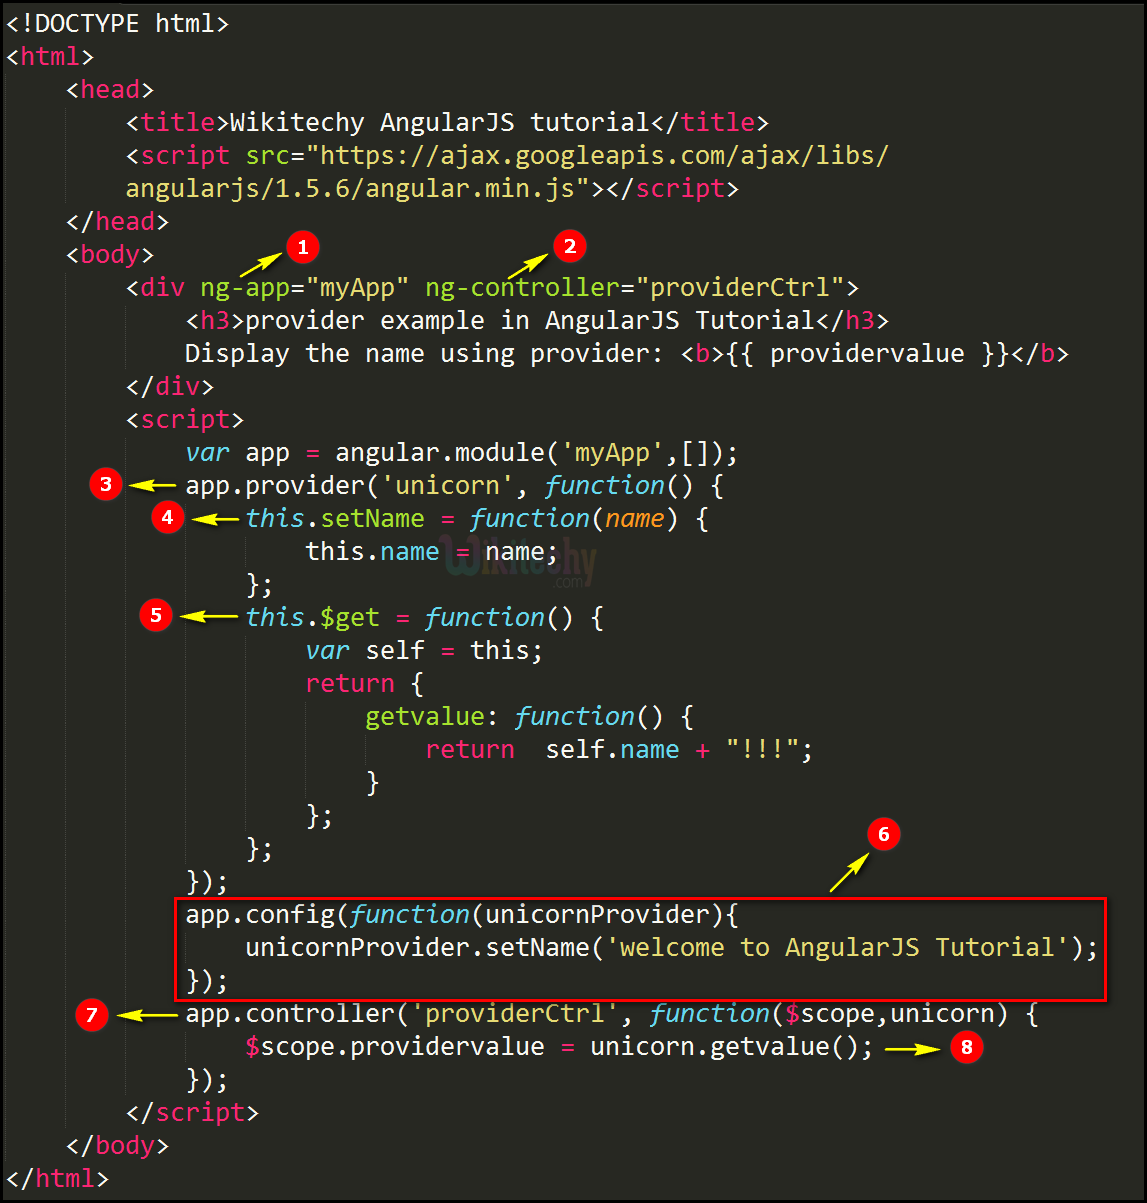 Angularjs providers wikitechy code explanation for angularjs providers pronofoot35fo Images